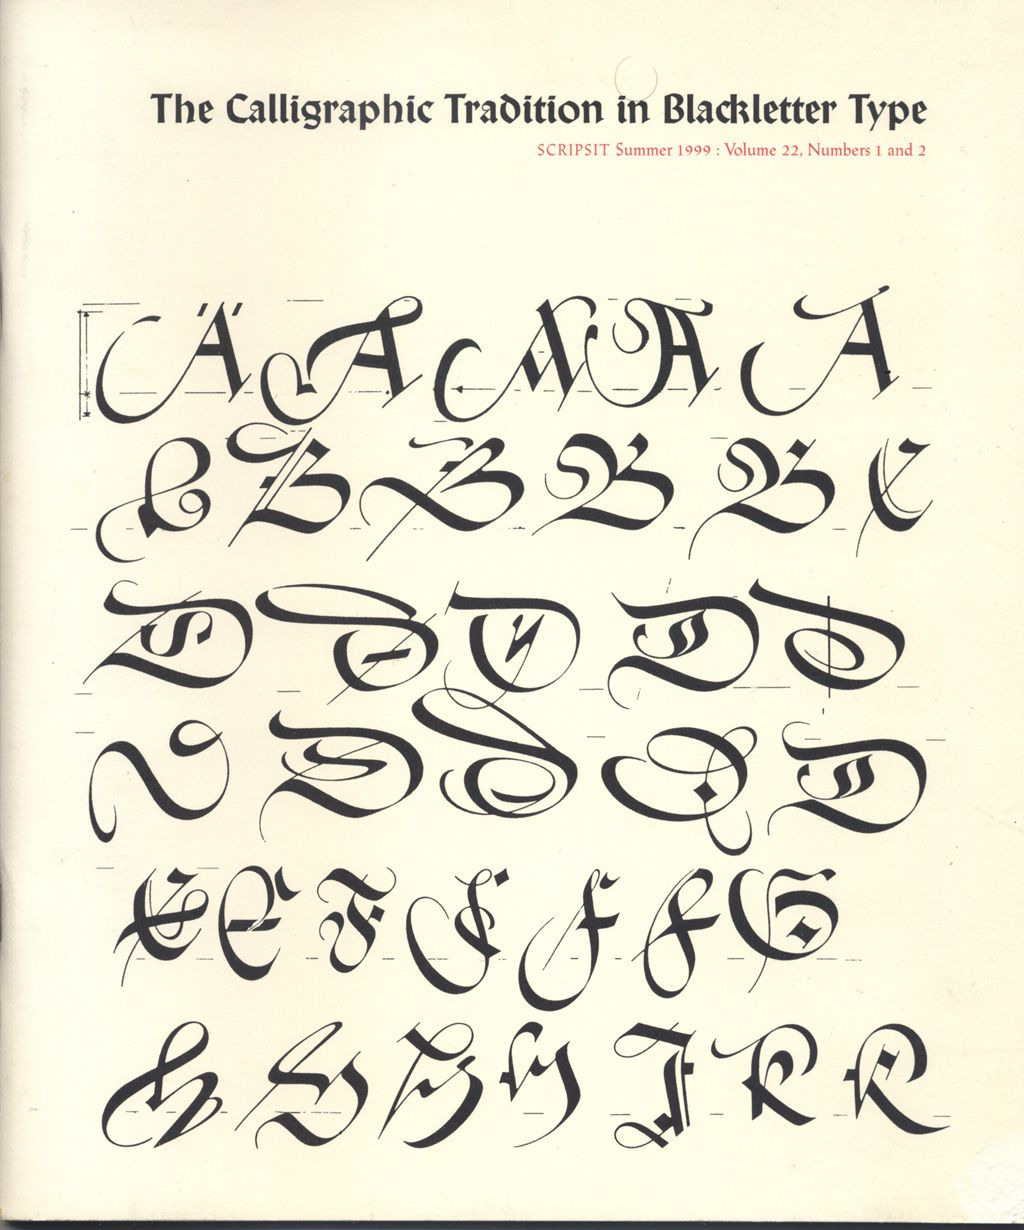 Paul Shaw Letter Design The Calligraphic Tradition In